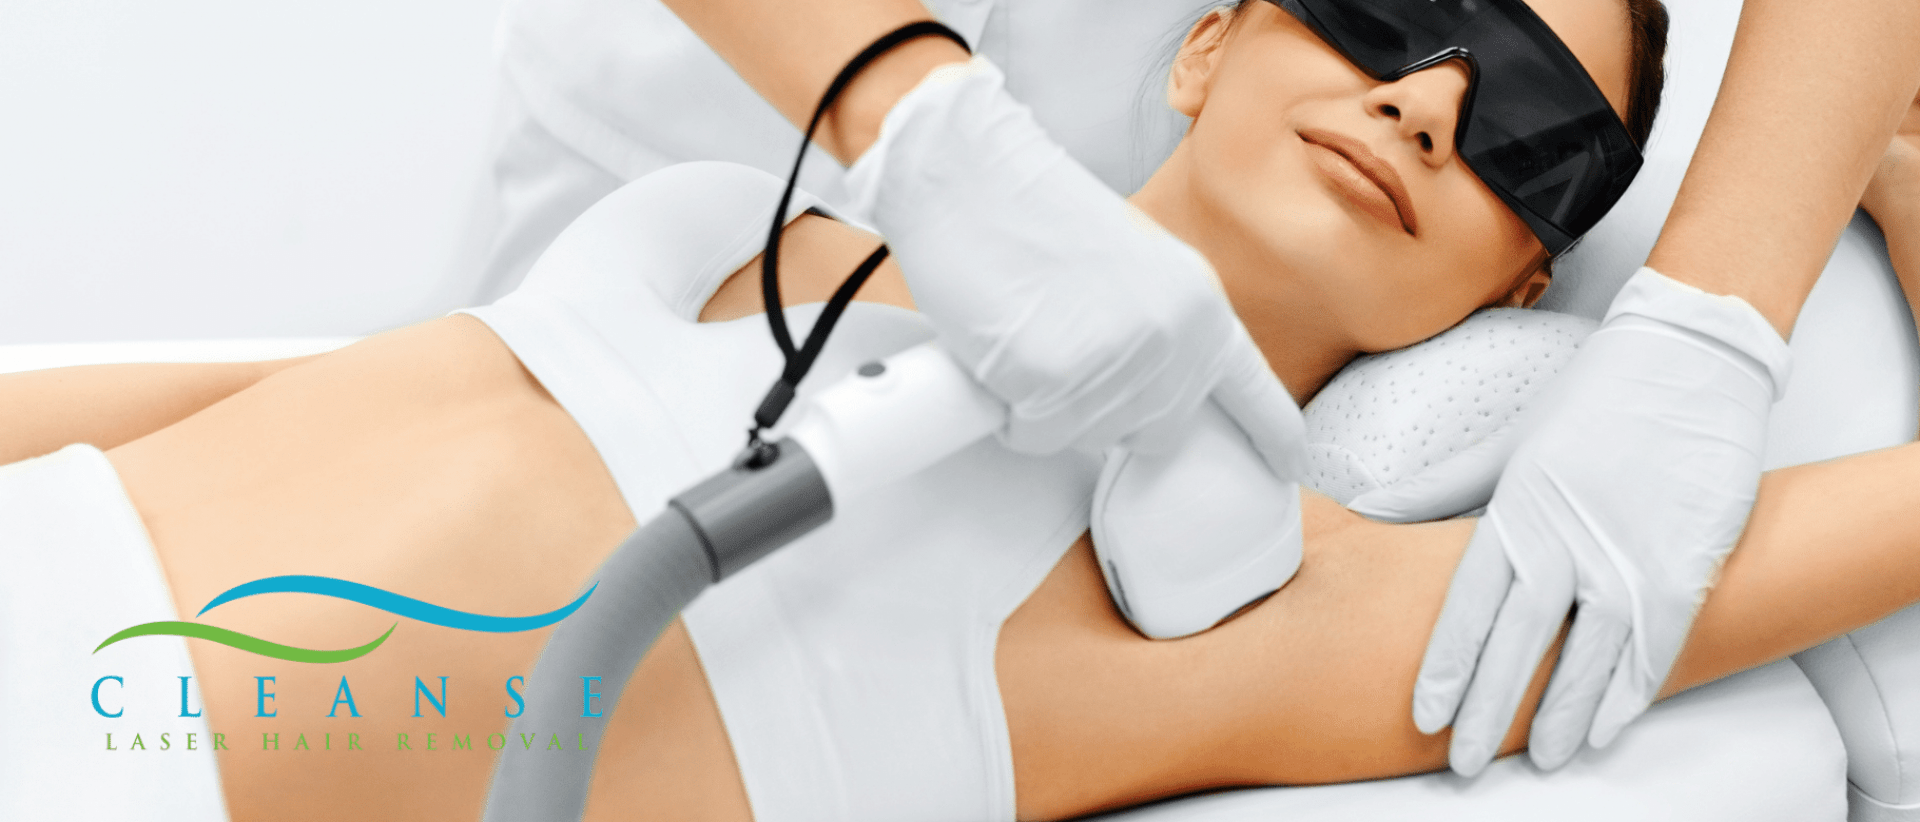 Cleanse Aesthetics - Laser Hair Removal